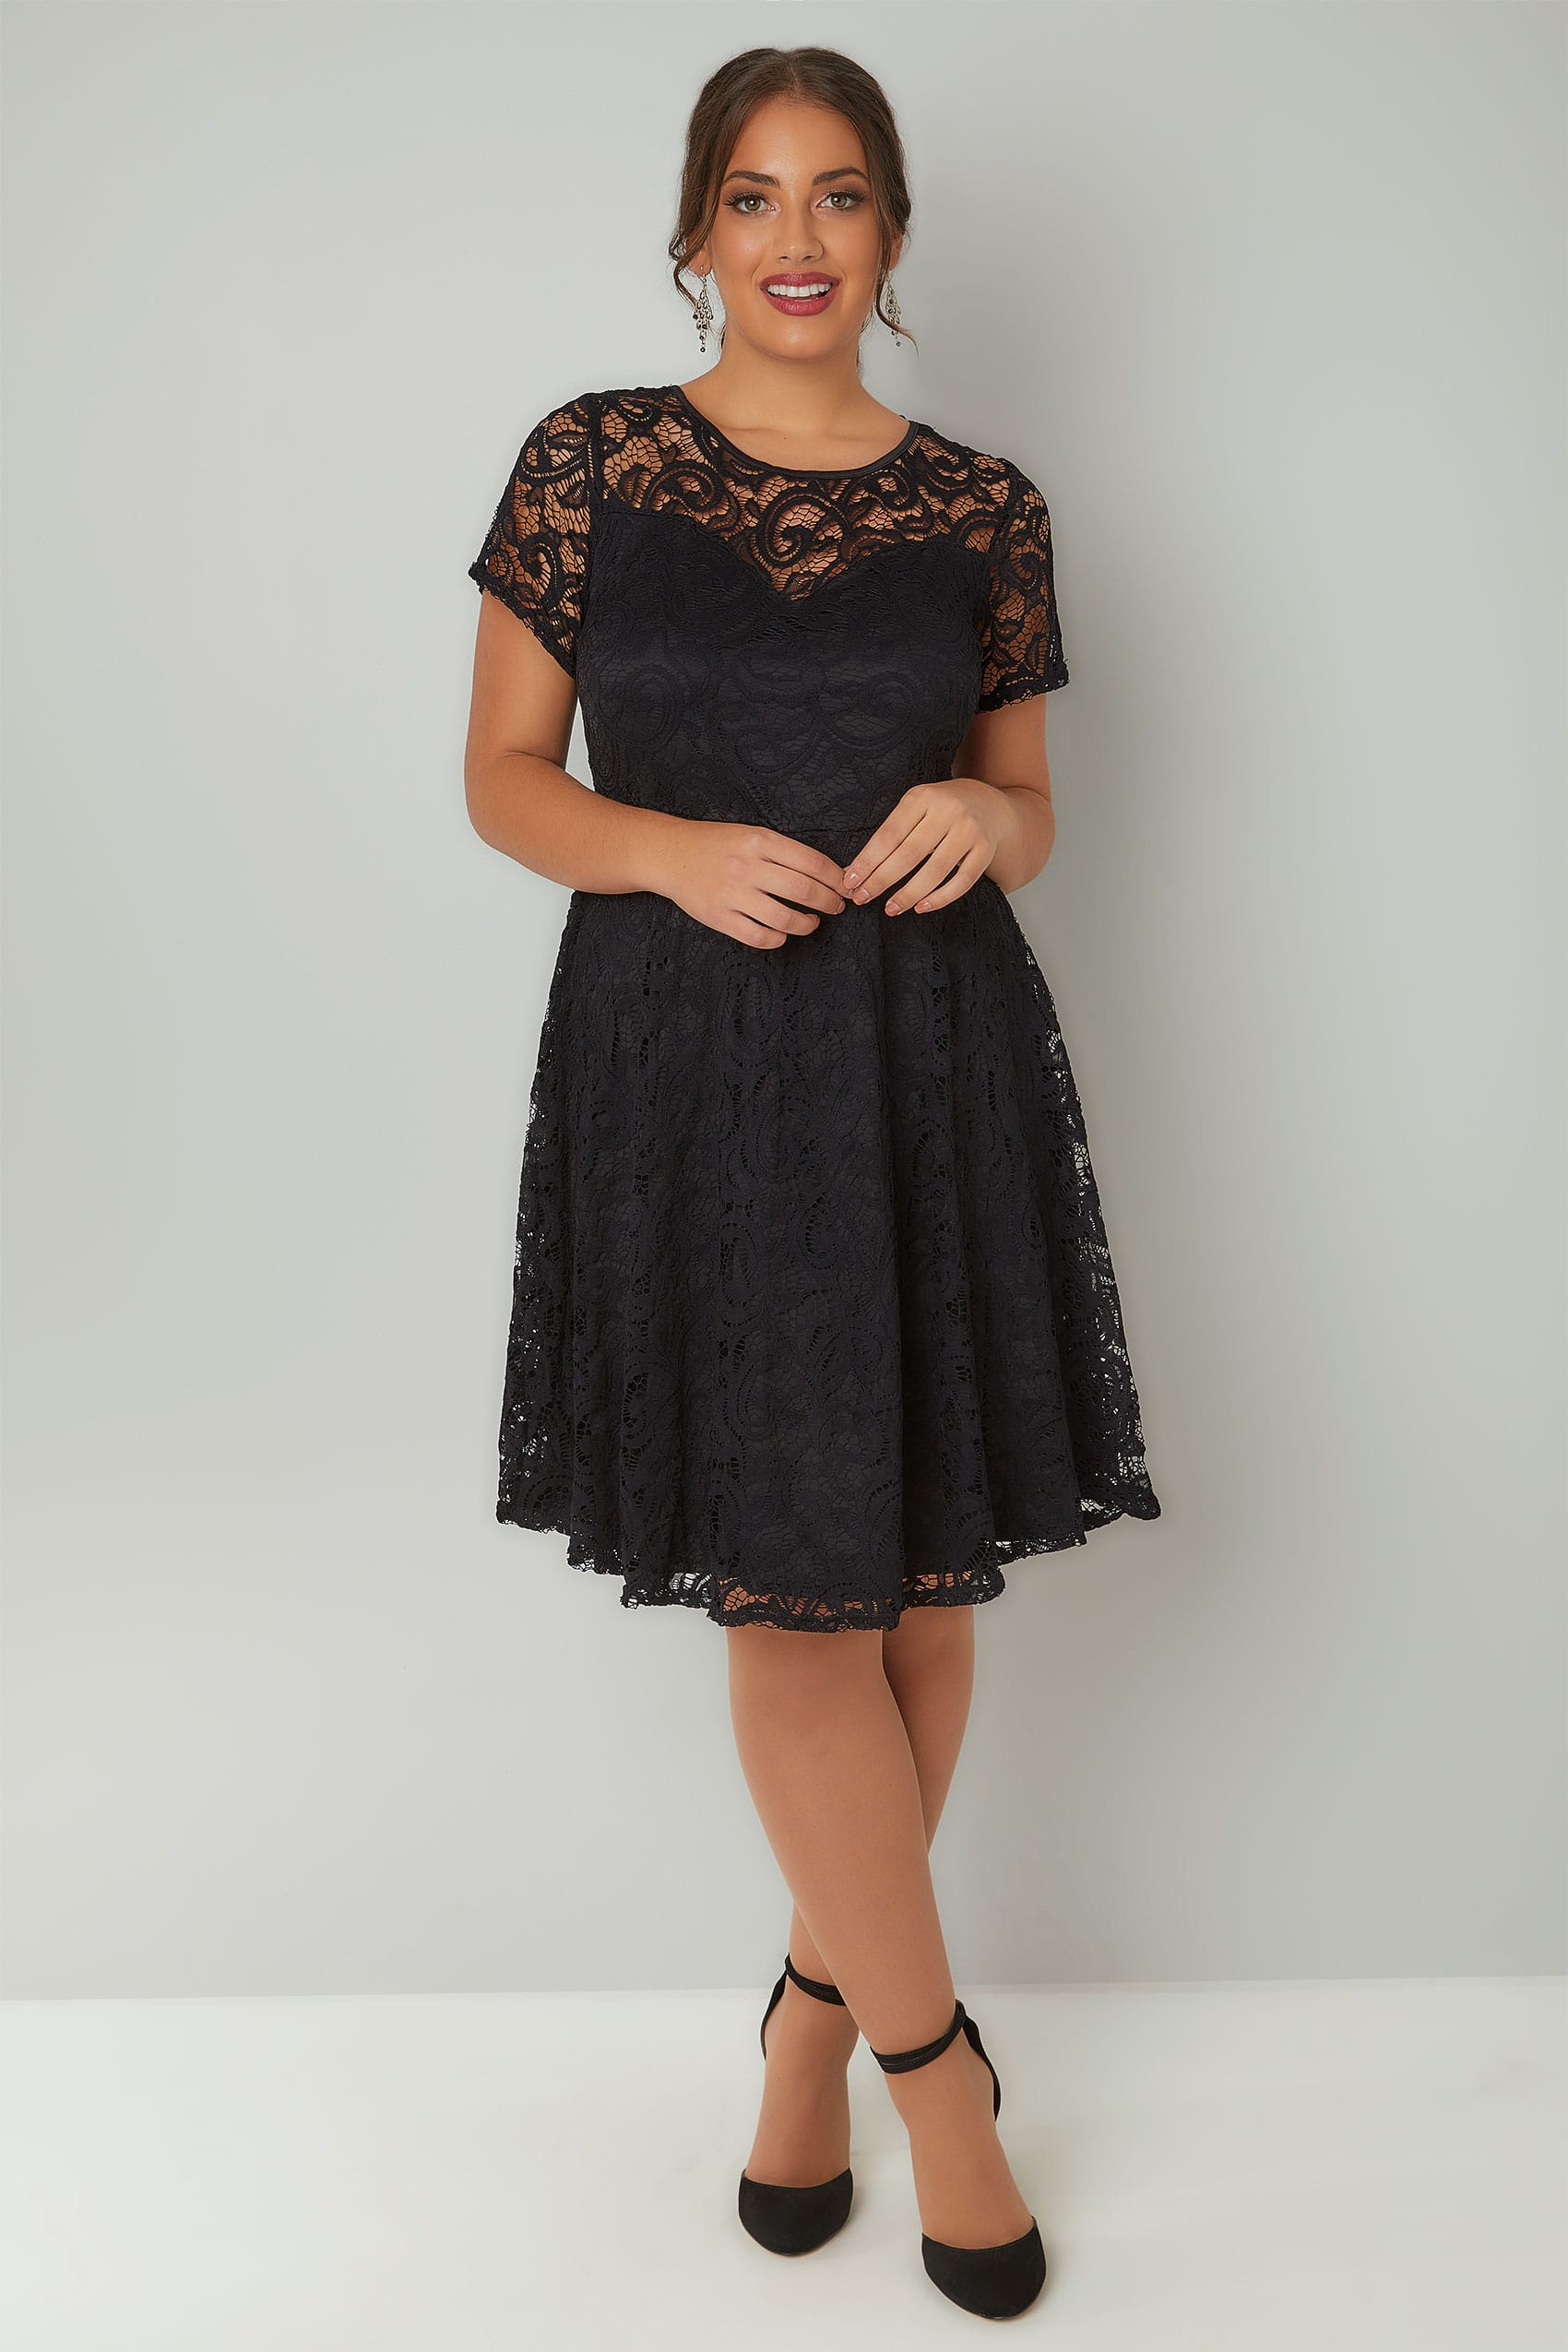 Black Floral Jersey Knit Skater Dress Description: A banded stretch waist nips you in as flutter sleeves and a flared handkerchief hem adds movement to this wrinkle-free mini dress.